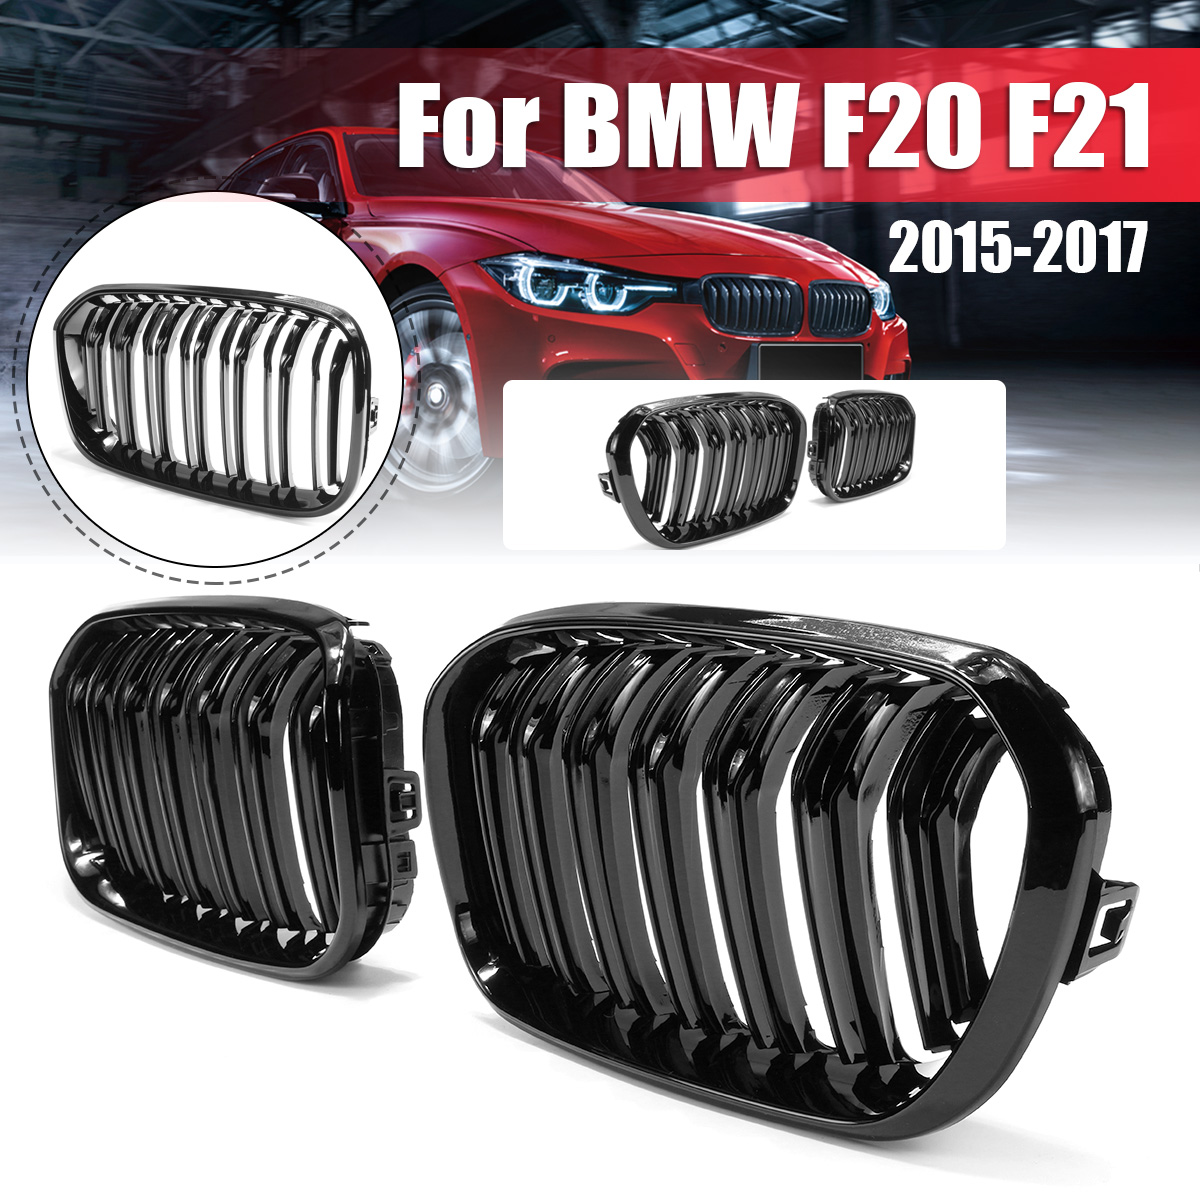 For BMW F20 F21 1 Series 2015 2016 2017 Pair Gloss Matt Black Double Slat Line M Color Front Racing Grill Kidney Grill Grille pair gloss matt black m color front kidney racing bumper grille grill for bmw x5 f15 x6 f16 x5m f85 x6m f86 2014 2015 2016 2017